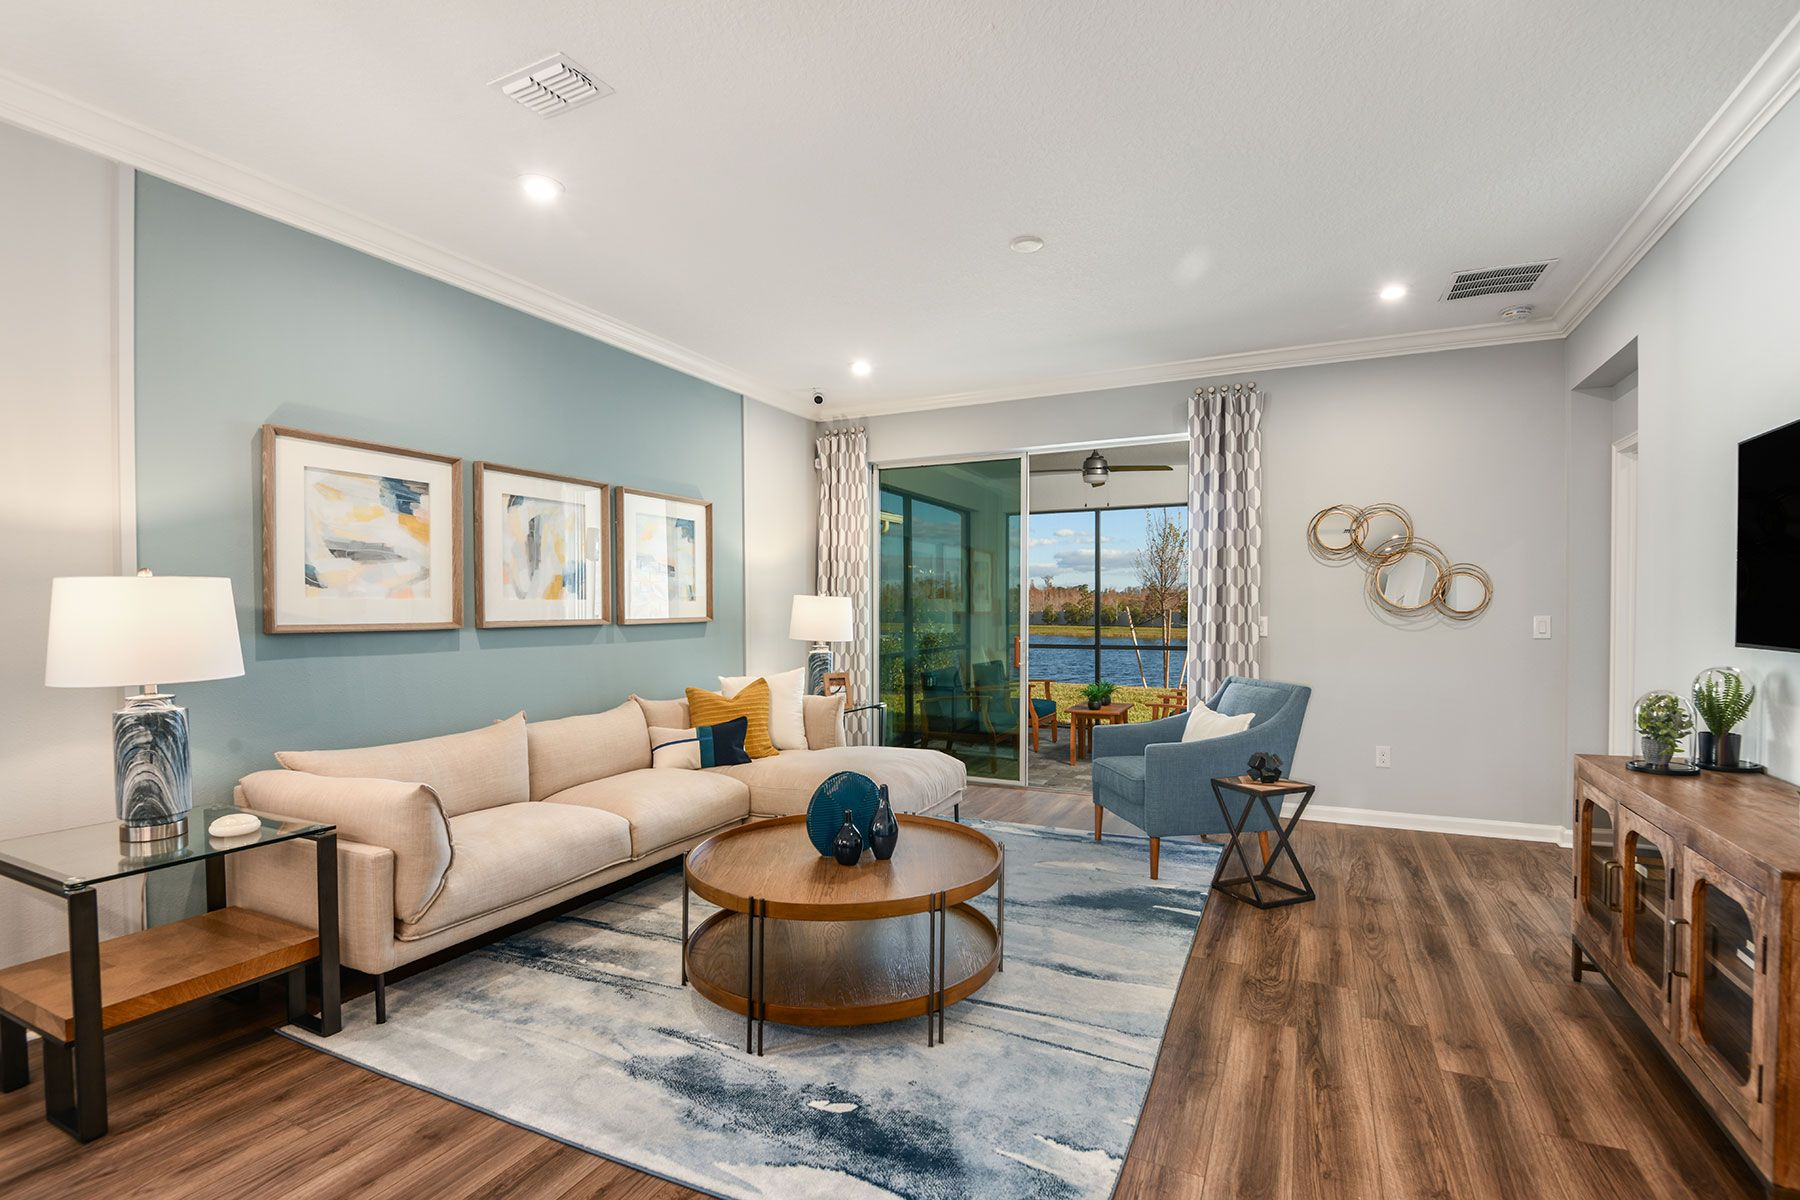 Living Area featured in the Amelia II By Mattamy Homes in Tampa-St. Petersburg, FL